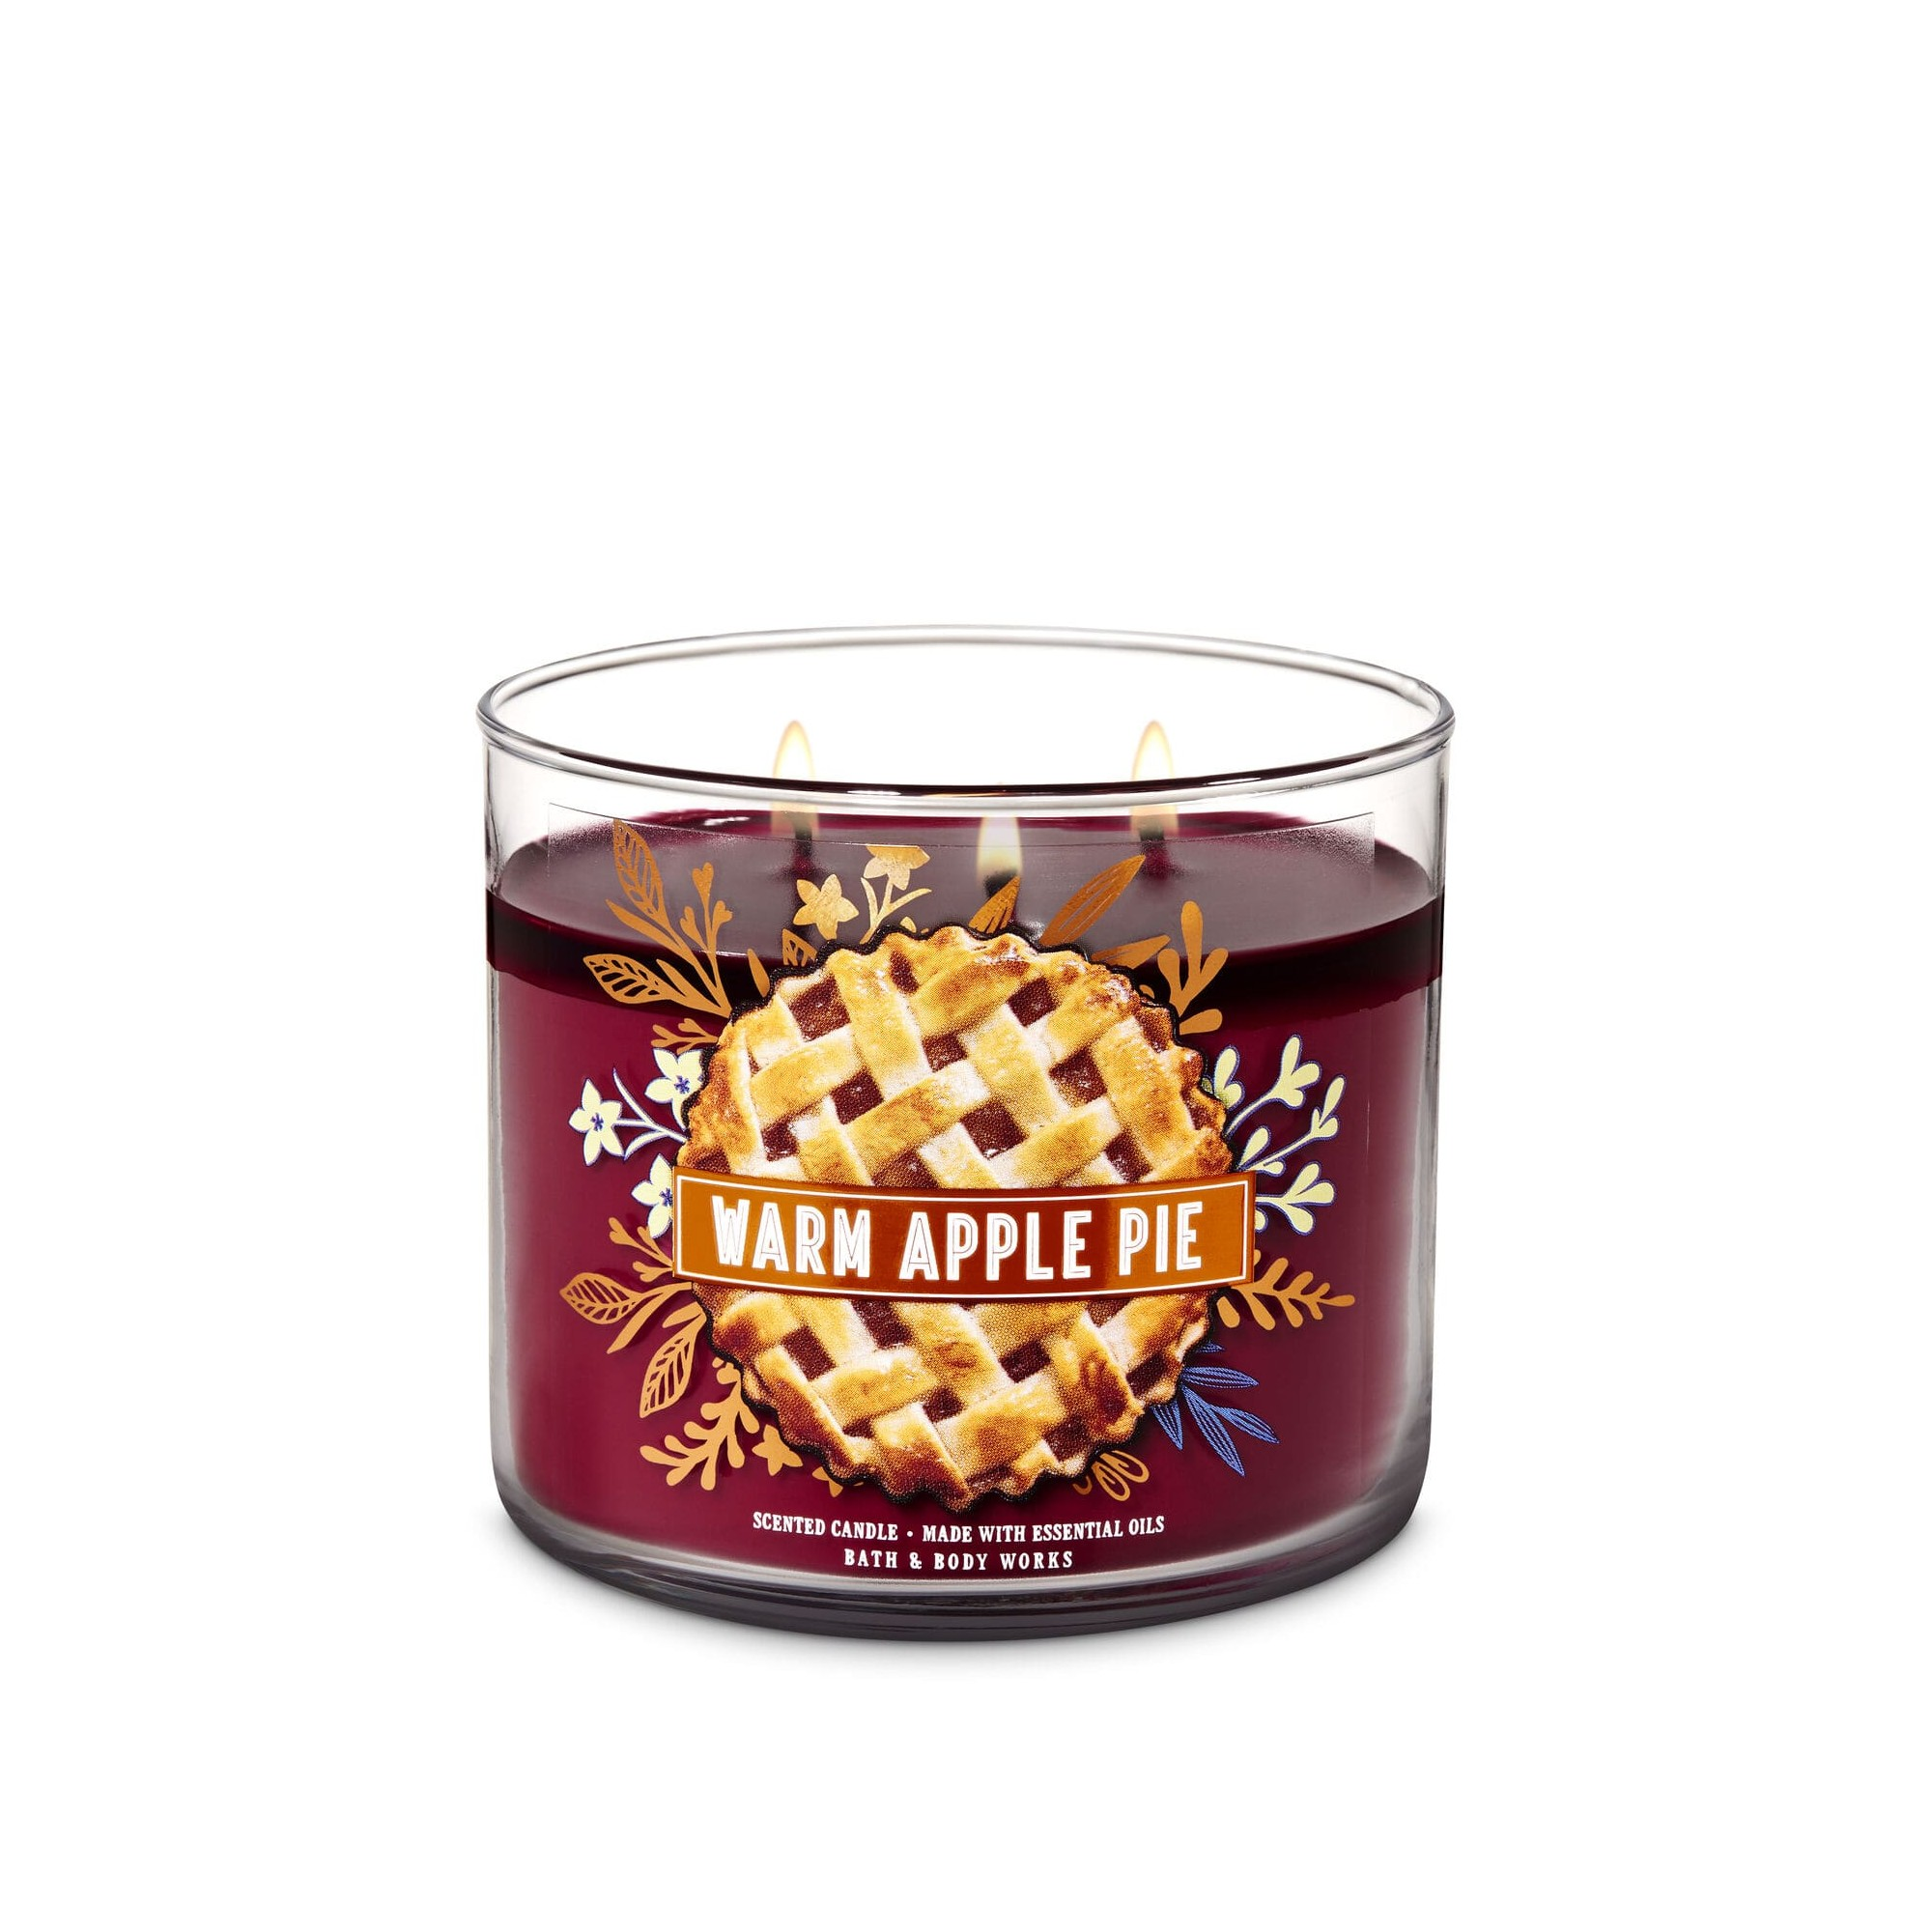 Bath & Body Works Warm Apple Pie 3 Wick Scented Candle